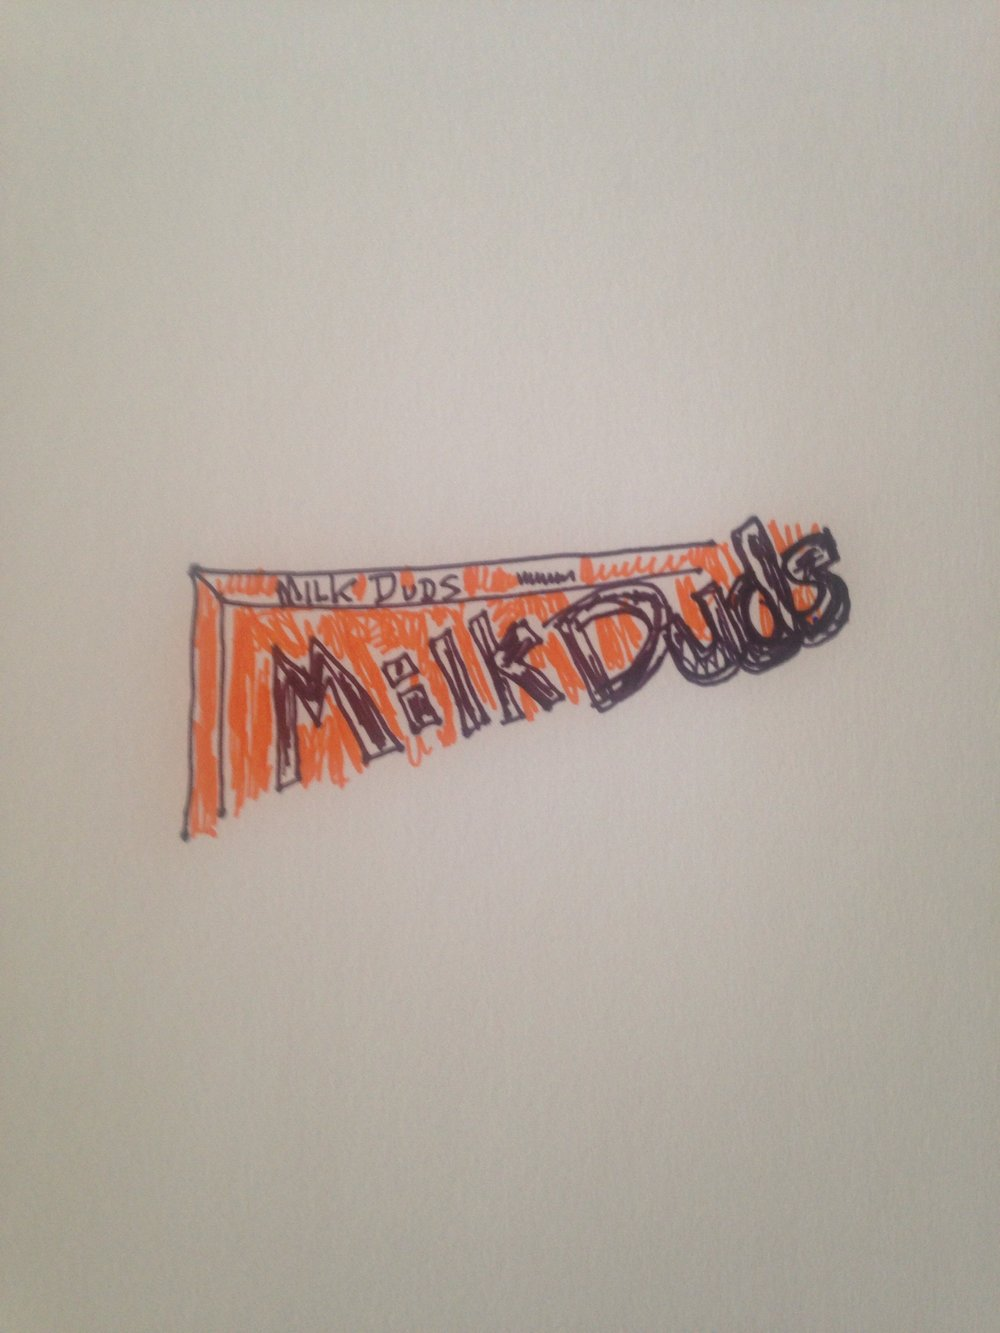 Milk Duds, 5 oz. box, artist rendering, December 22, 2016.